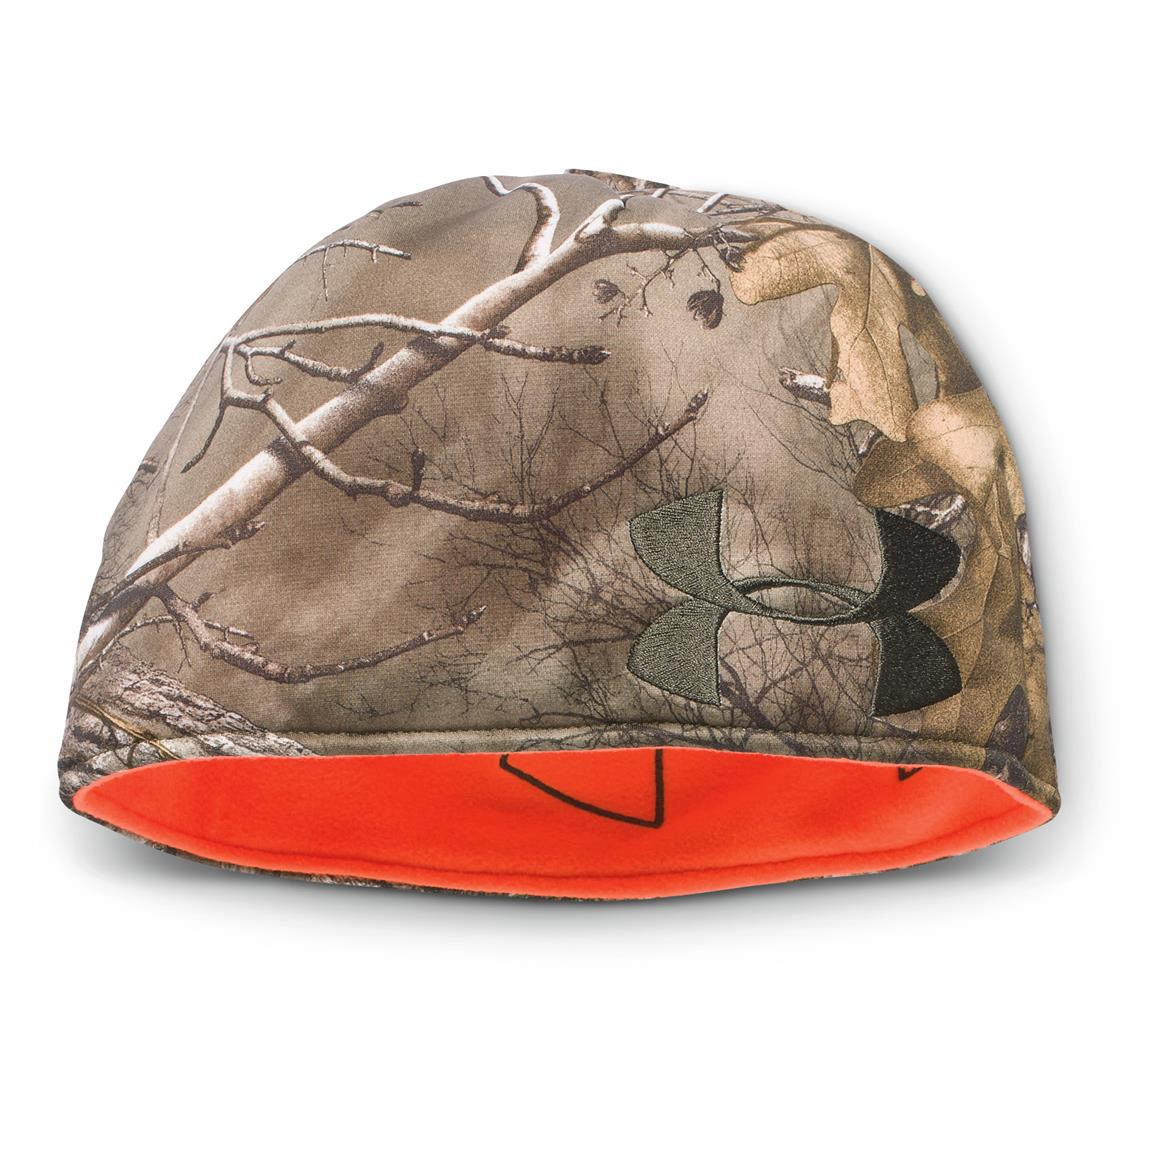 Under Armour Reversible Fleece Beanie, Realtree Xtra / Maverick Brown